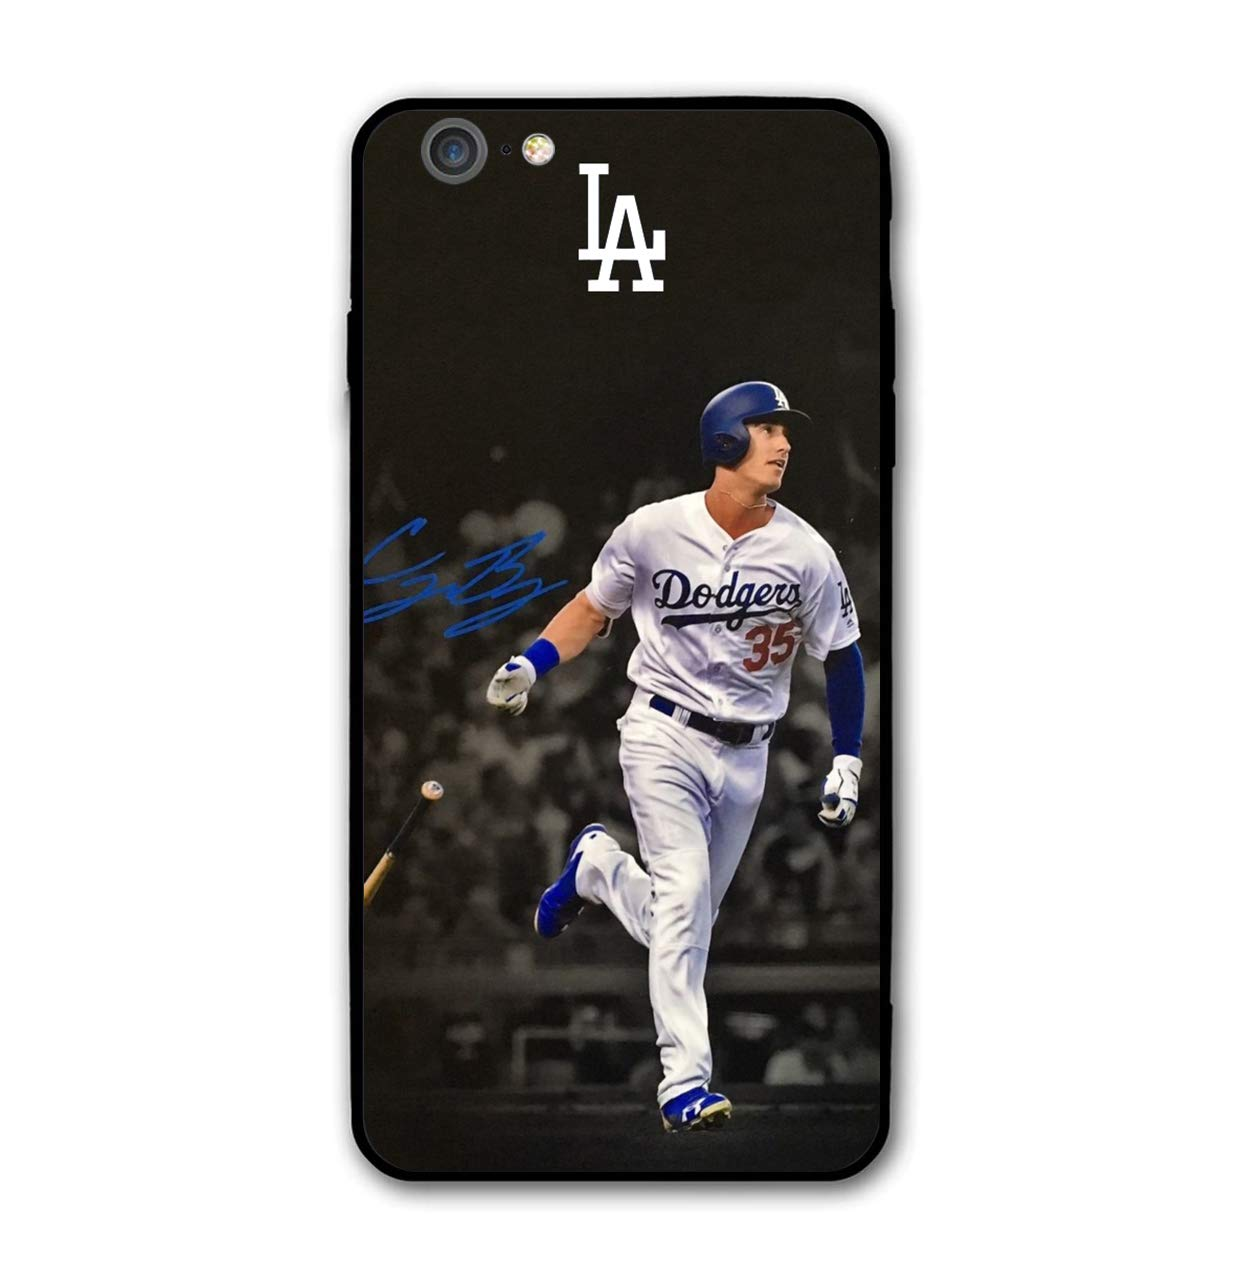 iPhone 6s Case Baseball Anti-Scratch Ultra-Thin Mobile Phone Shell Fashion Custom for iPhone 6//6s Only 4.7 inches pmayu87 iPhone 6 Case